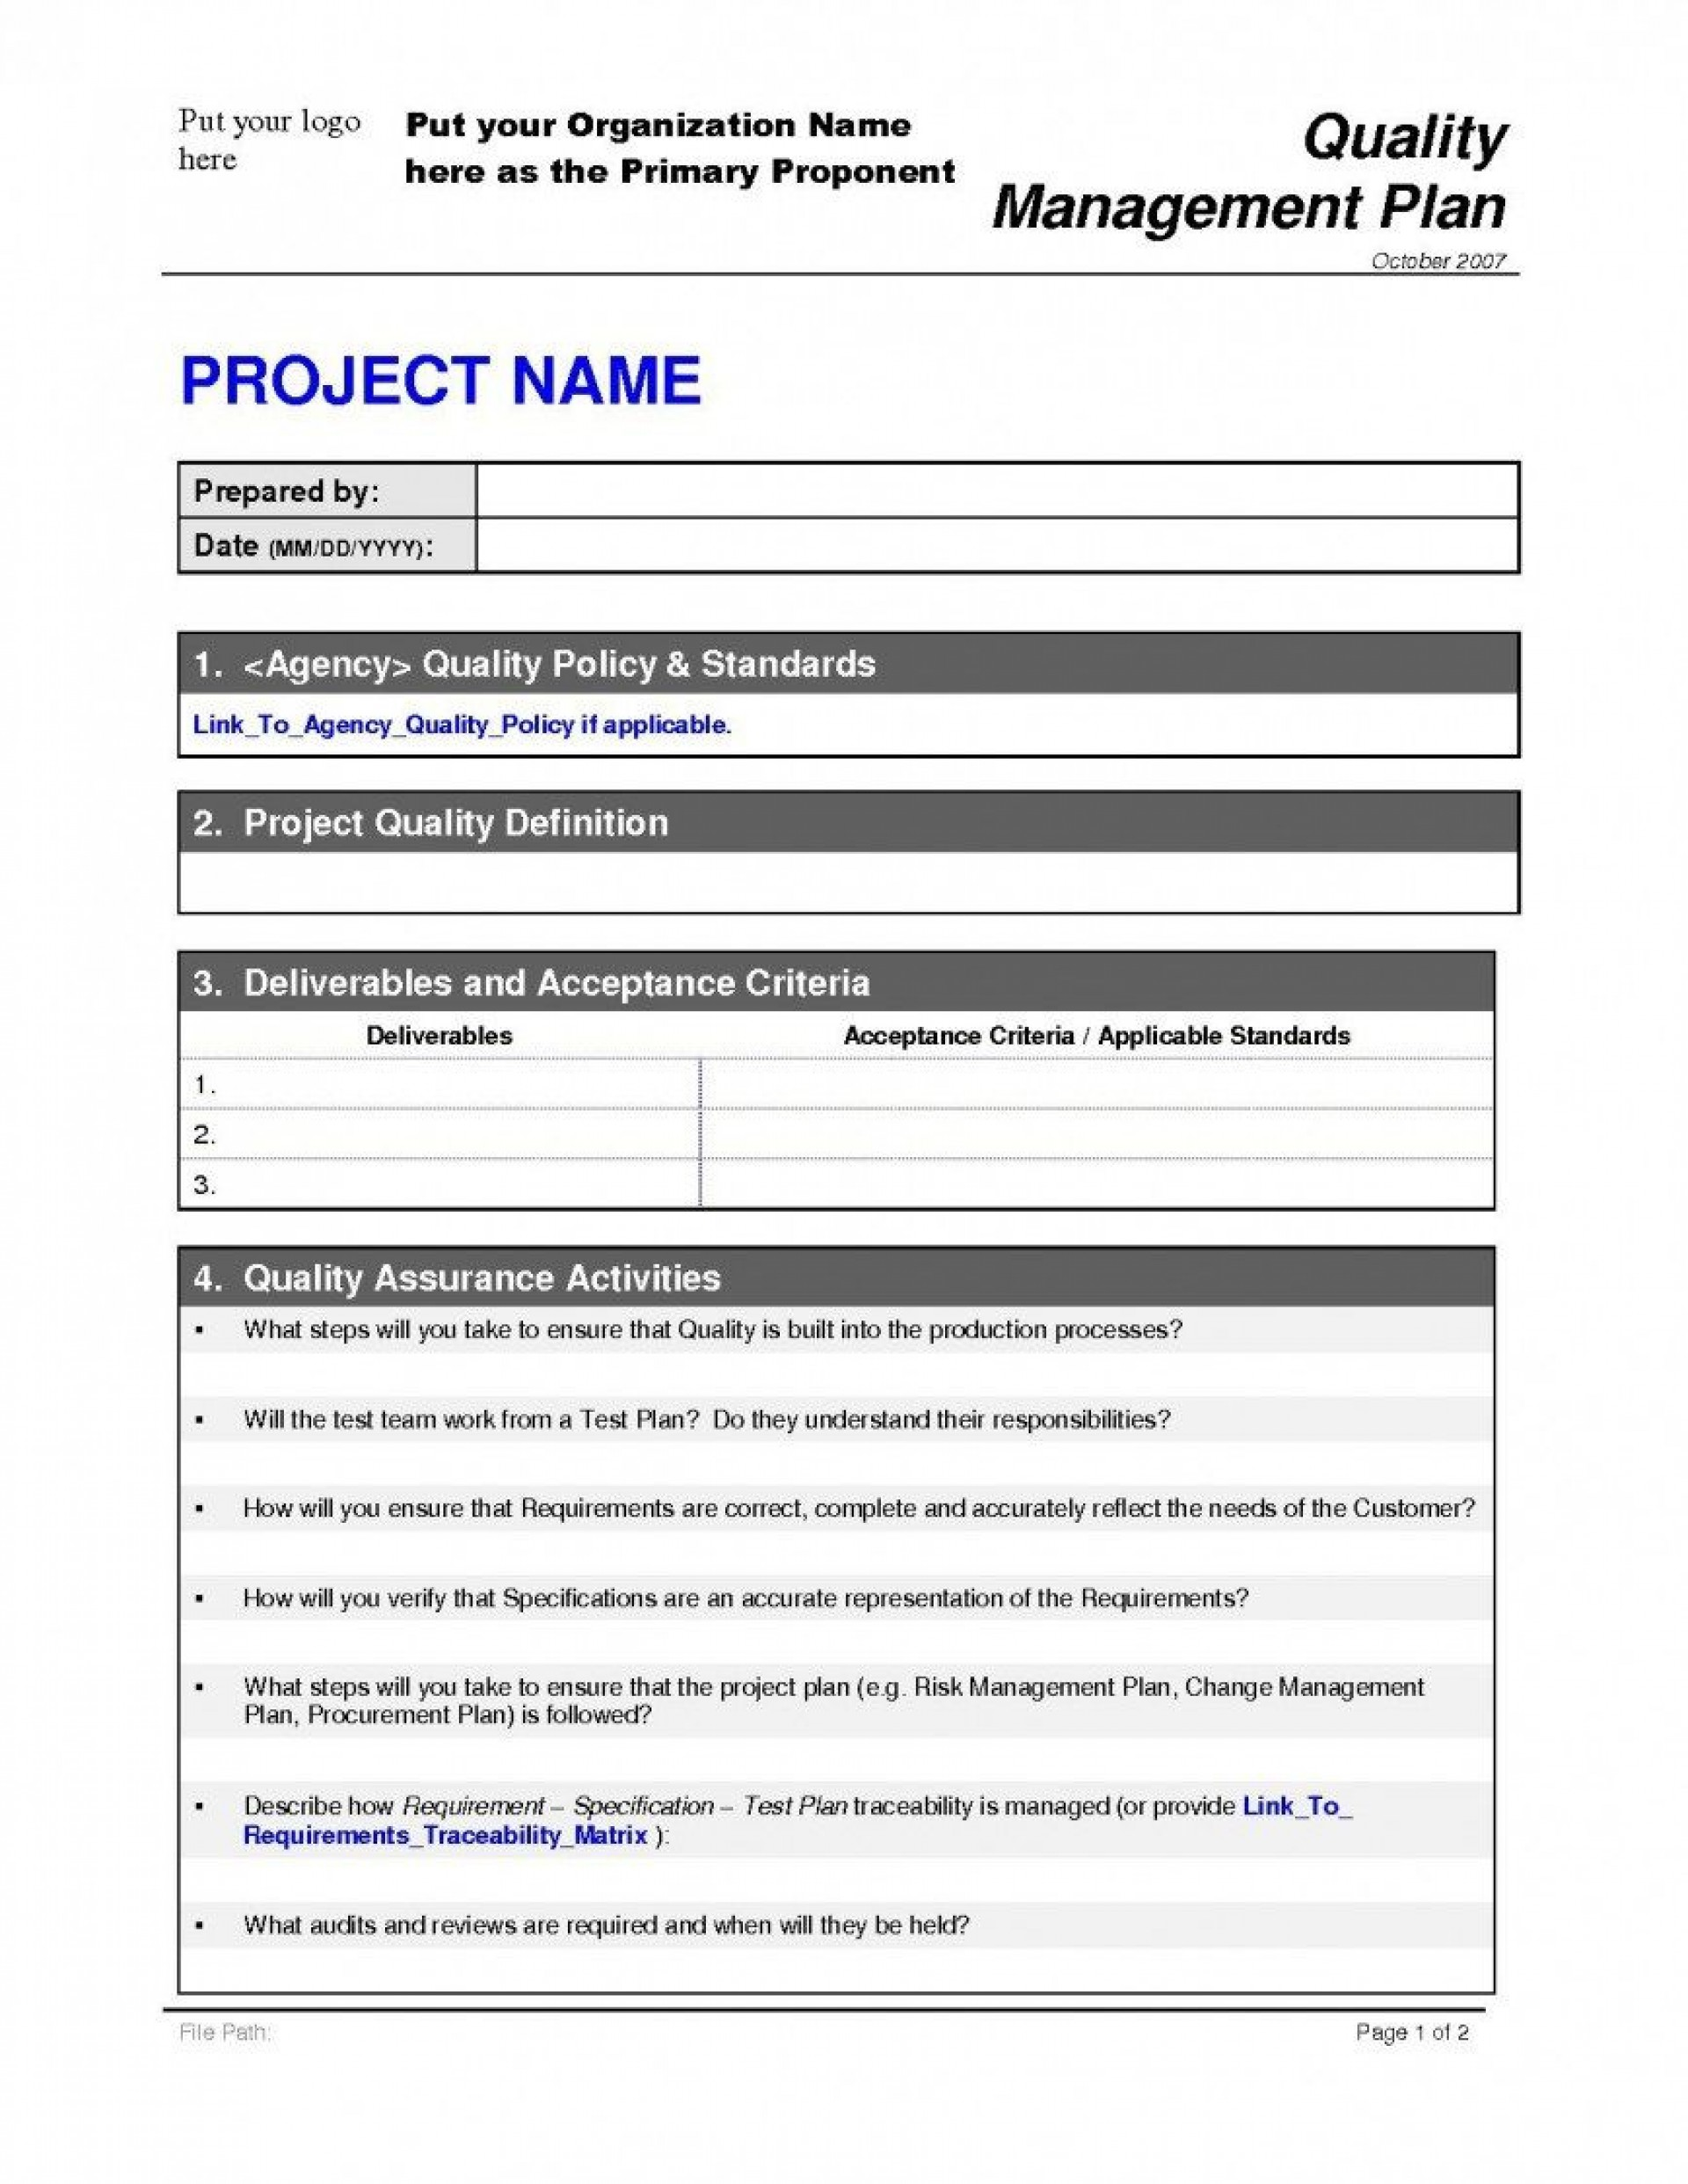 008 Striking Project Management Plan Template Pmi Picture  Quality1920